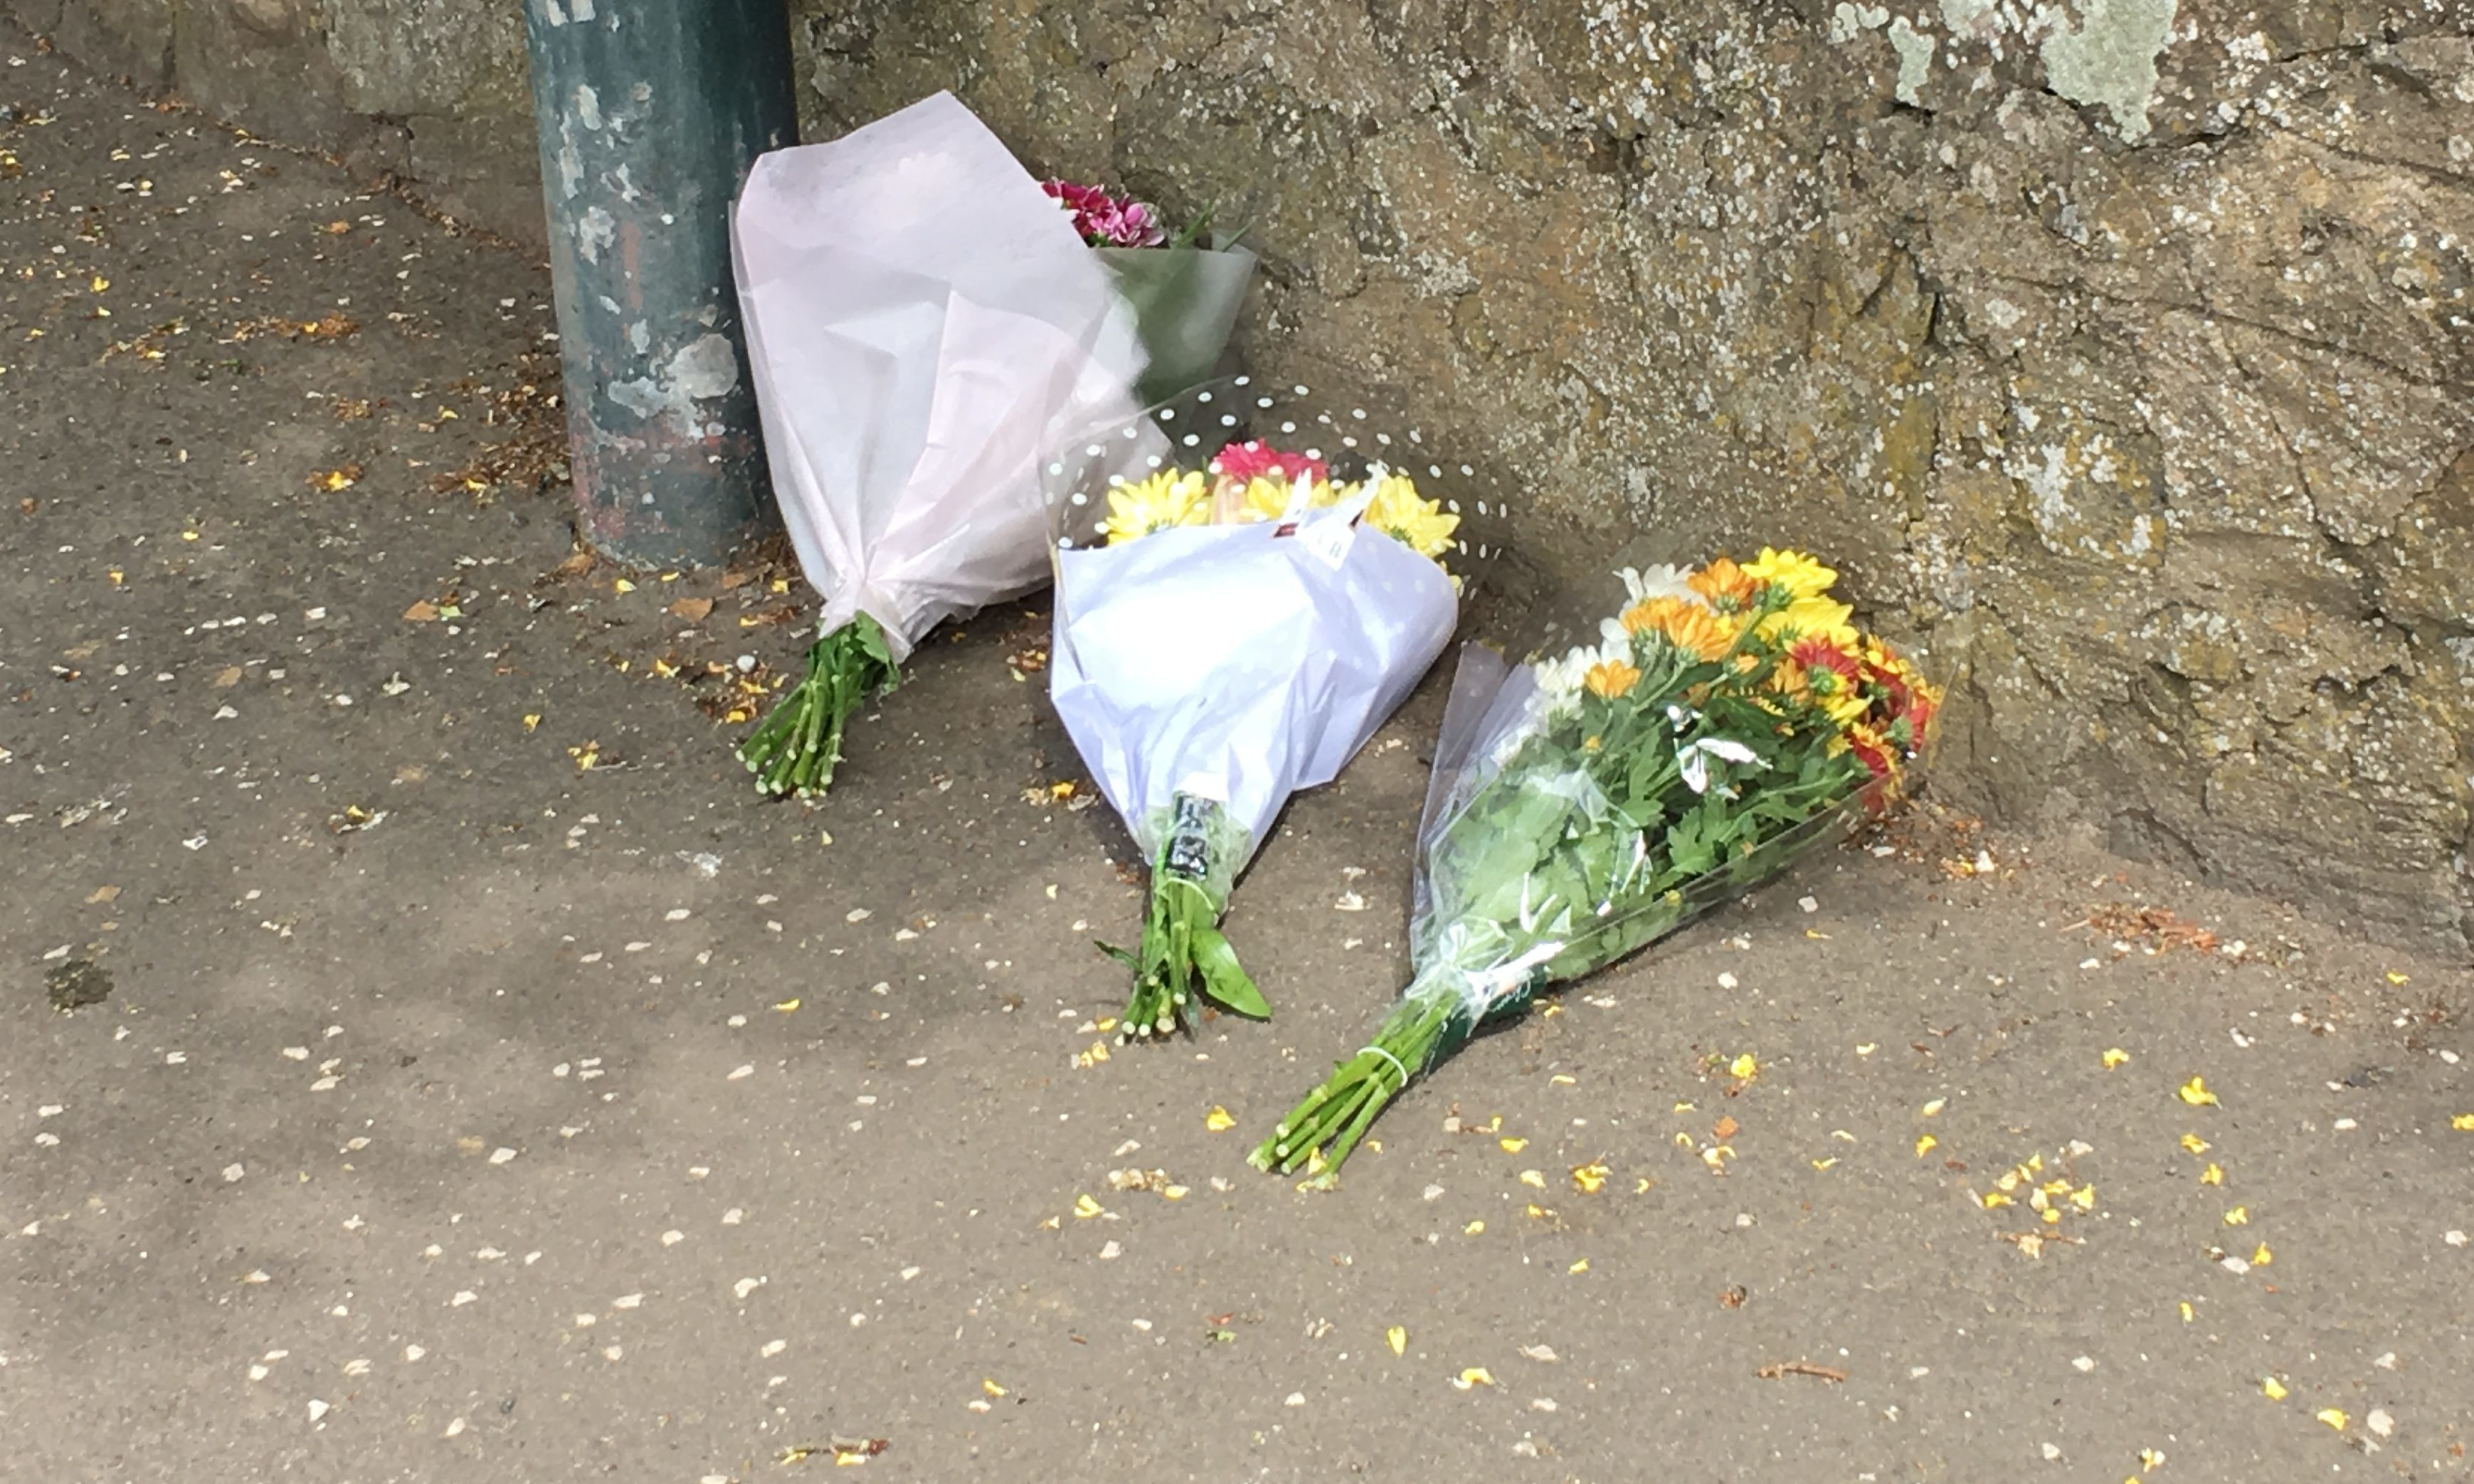 Flowers left at the scene of the tragedy.